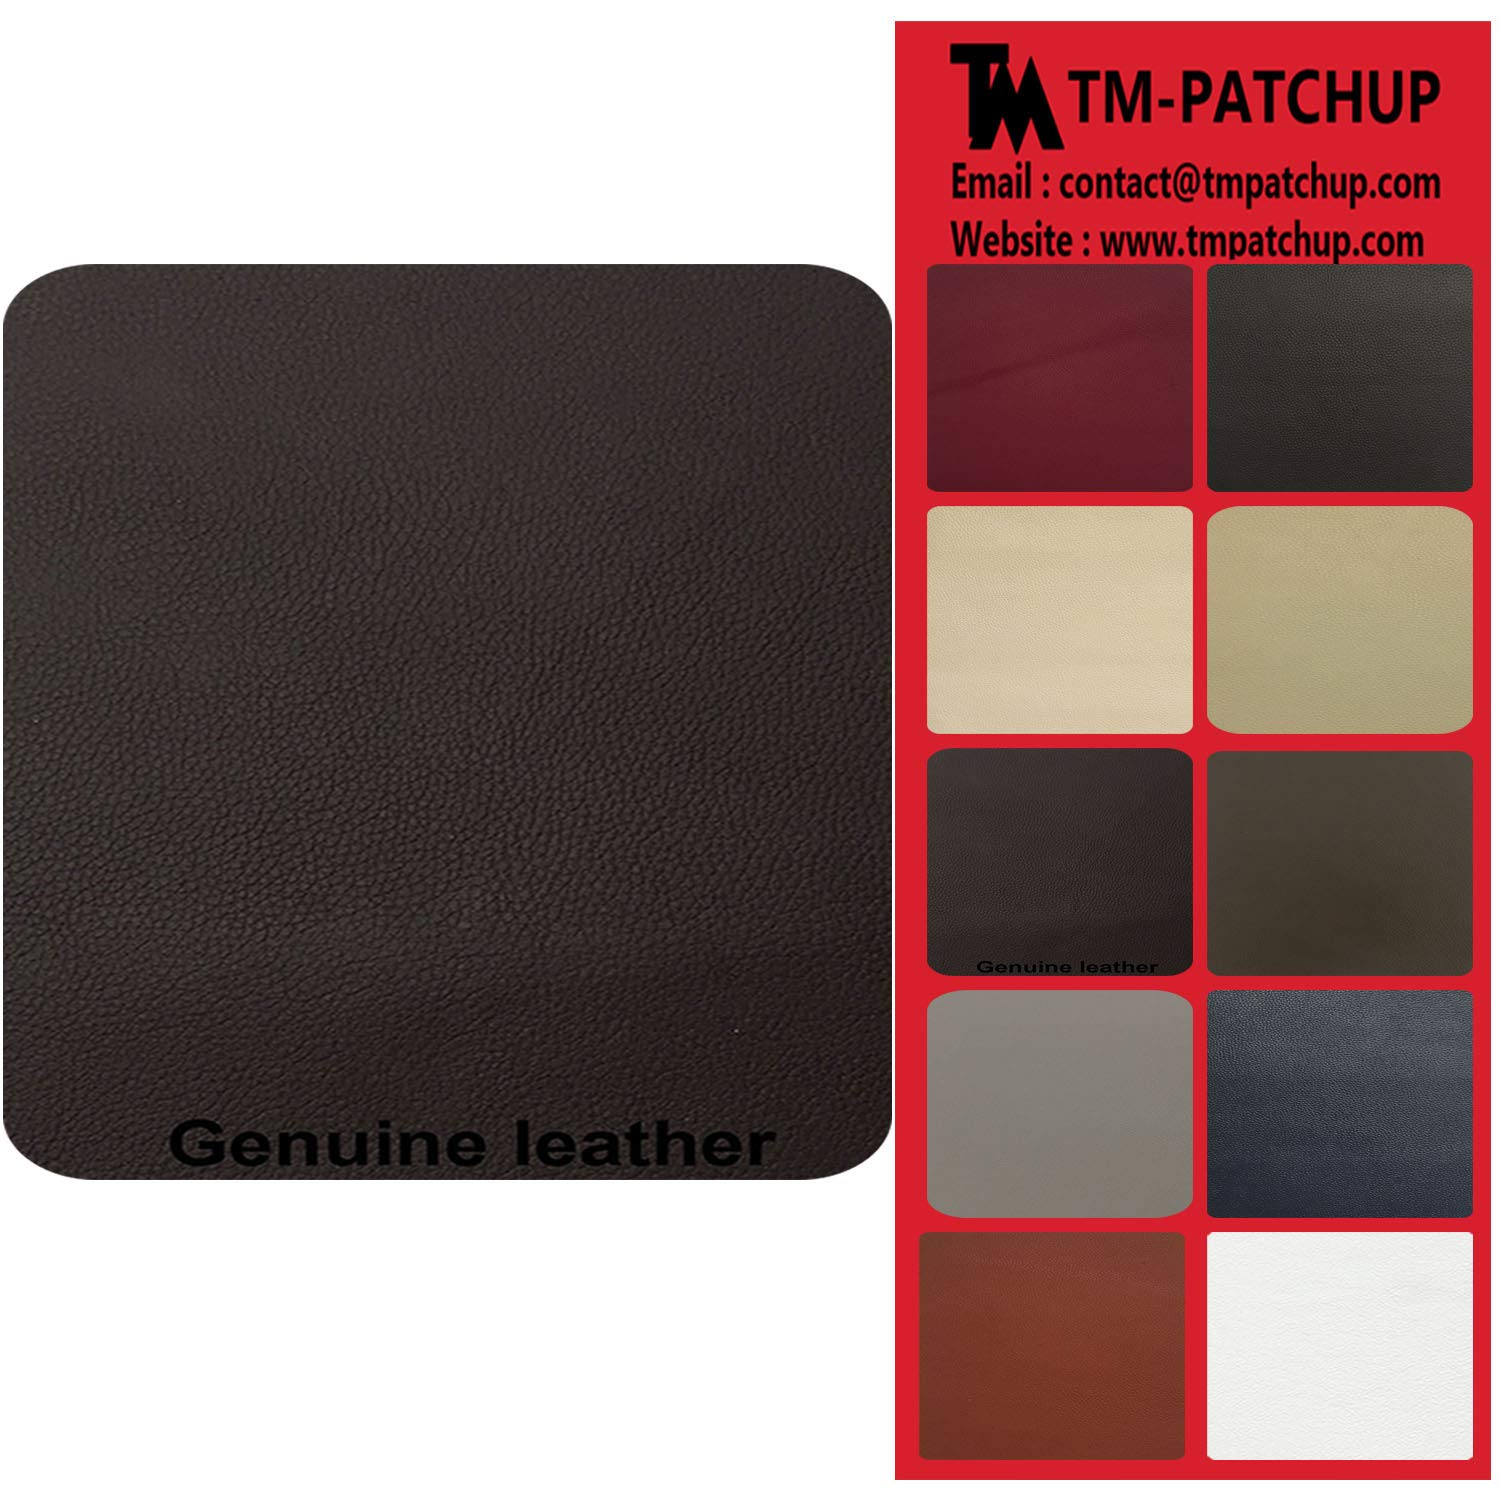 TMgroup, Leather Patches for Furniture, Genuine Leather Repair Patch kit, Peel and Stick for Couch, Sofas, car Seats, Hand Bags,Furniture, Size 6-inch x 3-inch (Dark Brown, Quantity : 1)